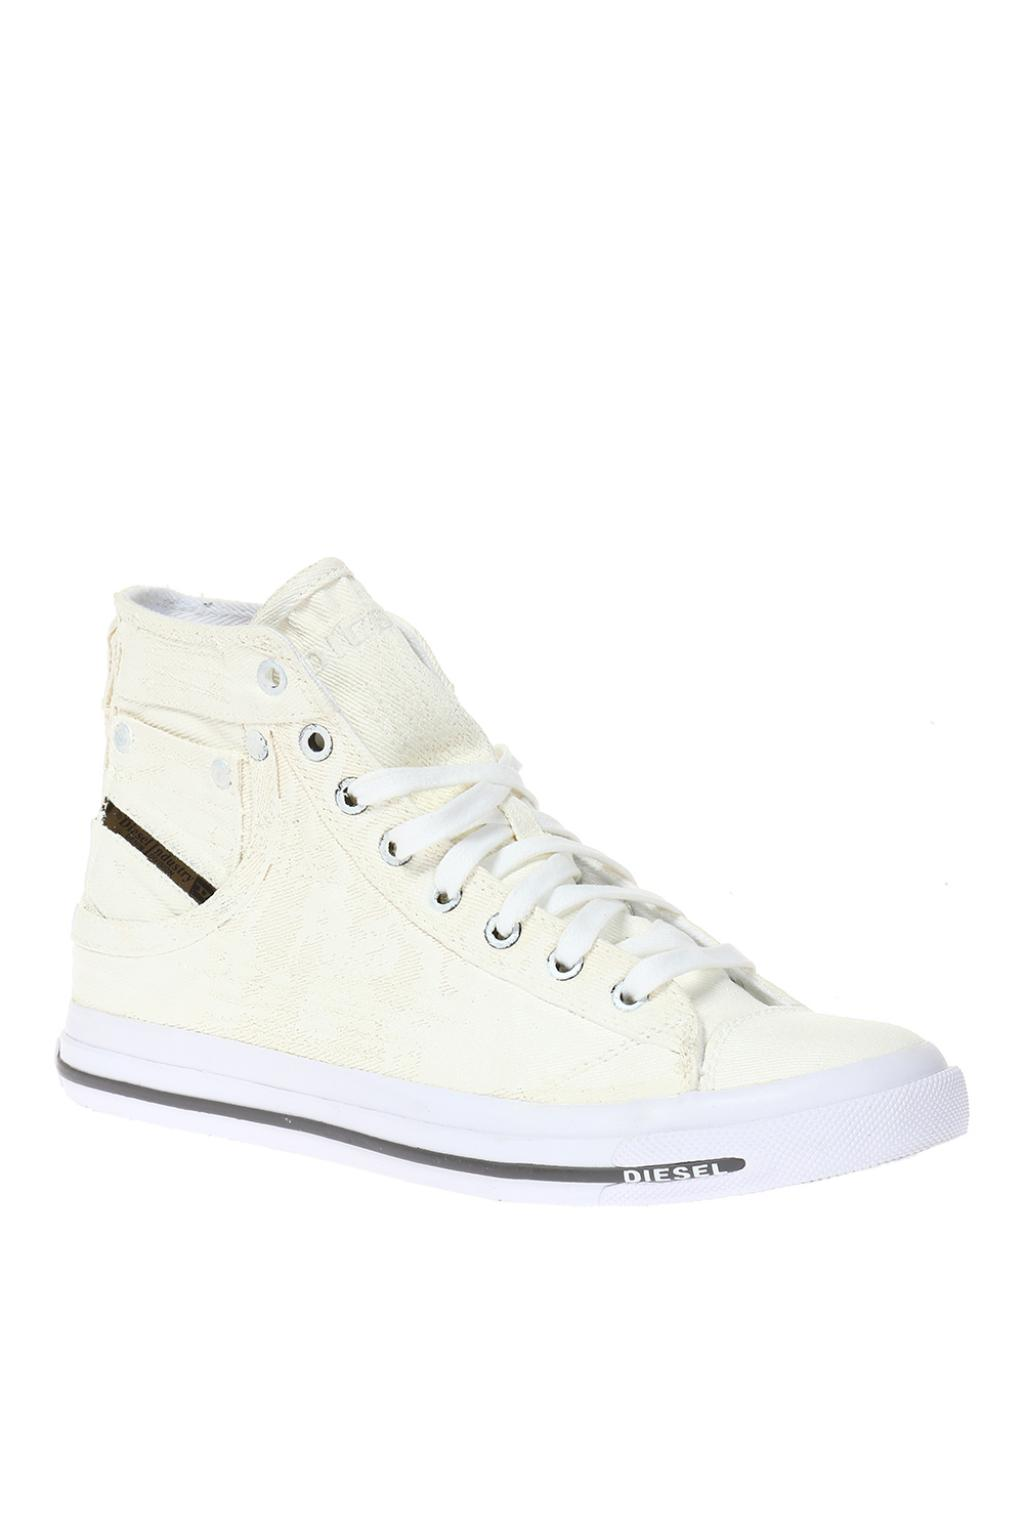 Diesel 'Exposure I' high-top sneakers